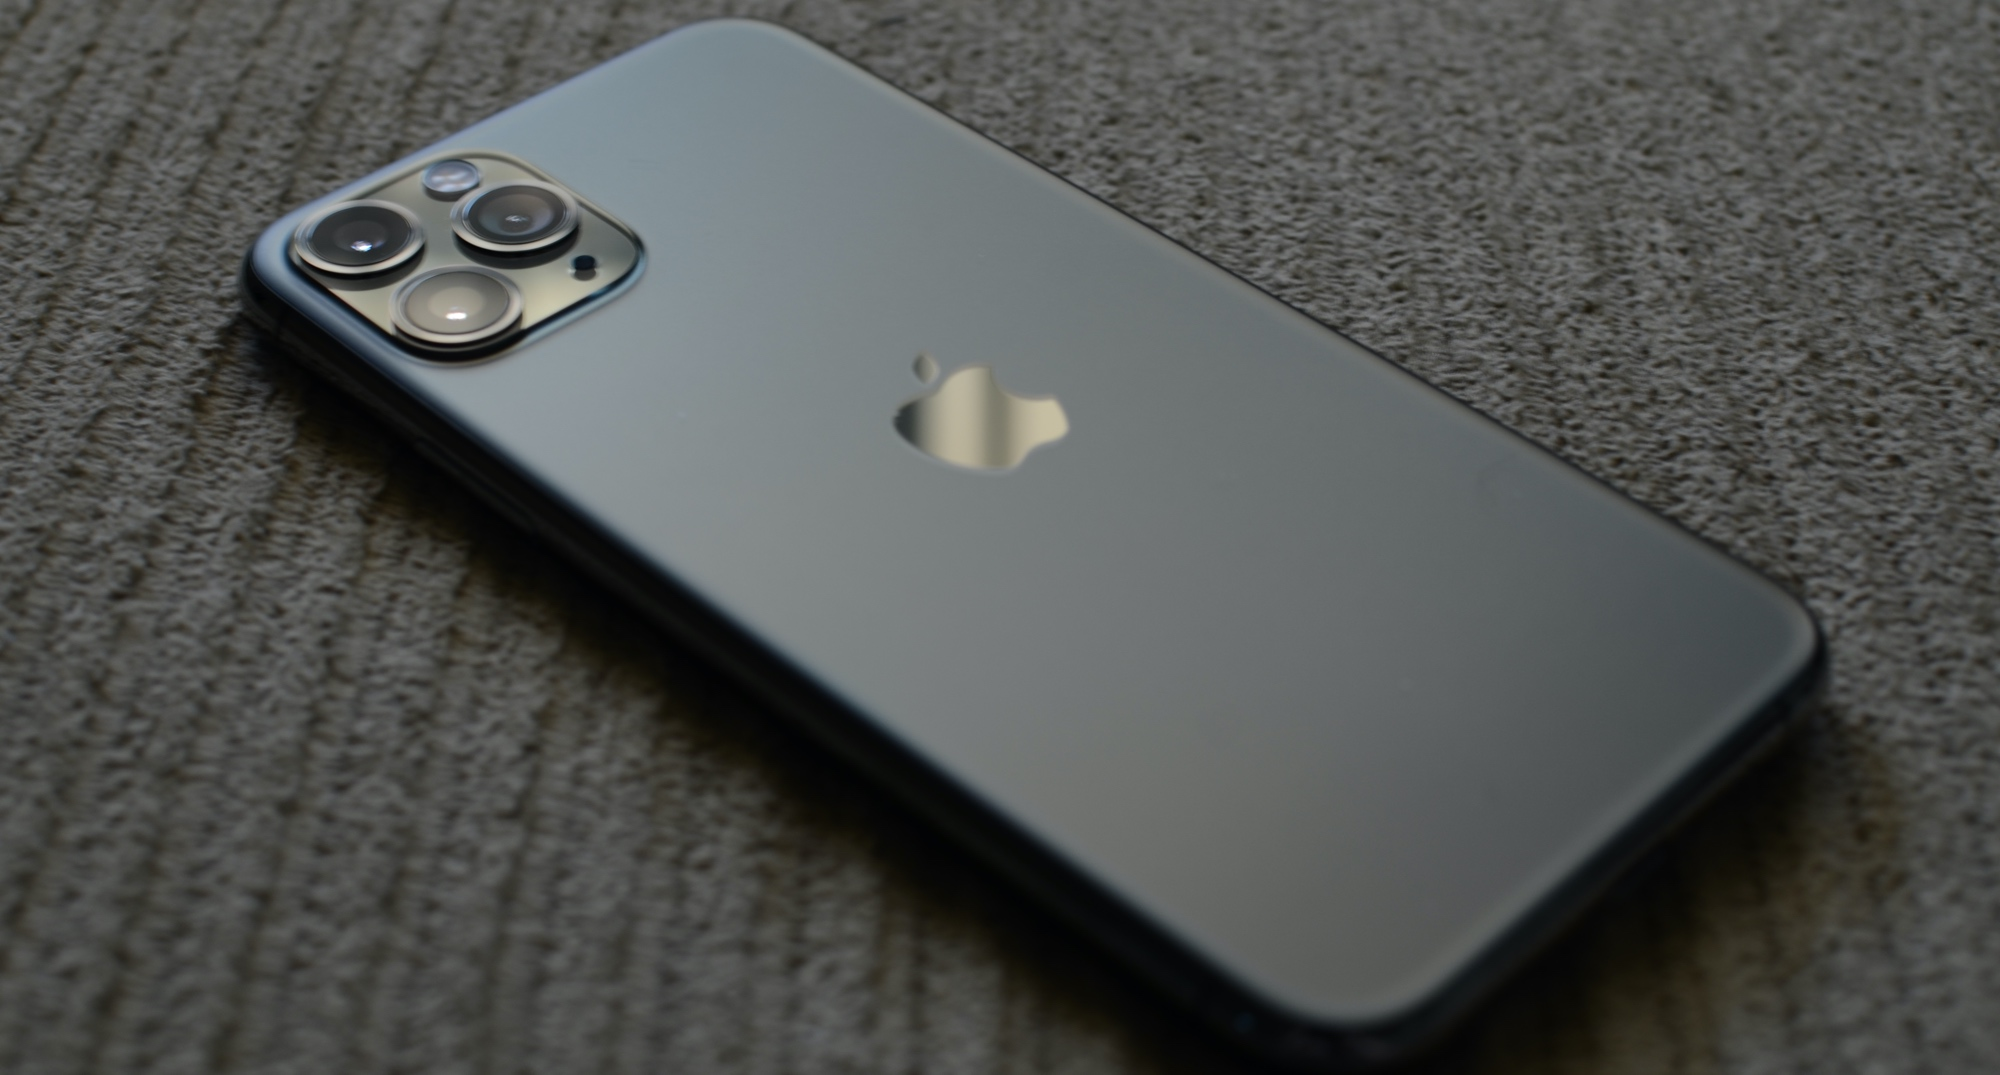 Apple iPhone 12 Release Date, Camera Specs 64MP Lens, Improved Night Mode, Smart HDR, Macro Shots